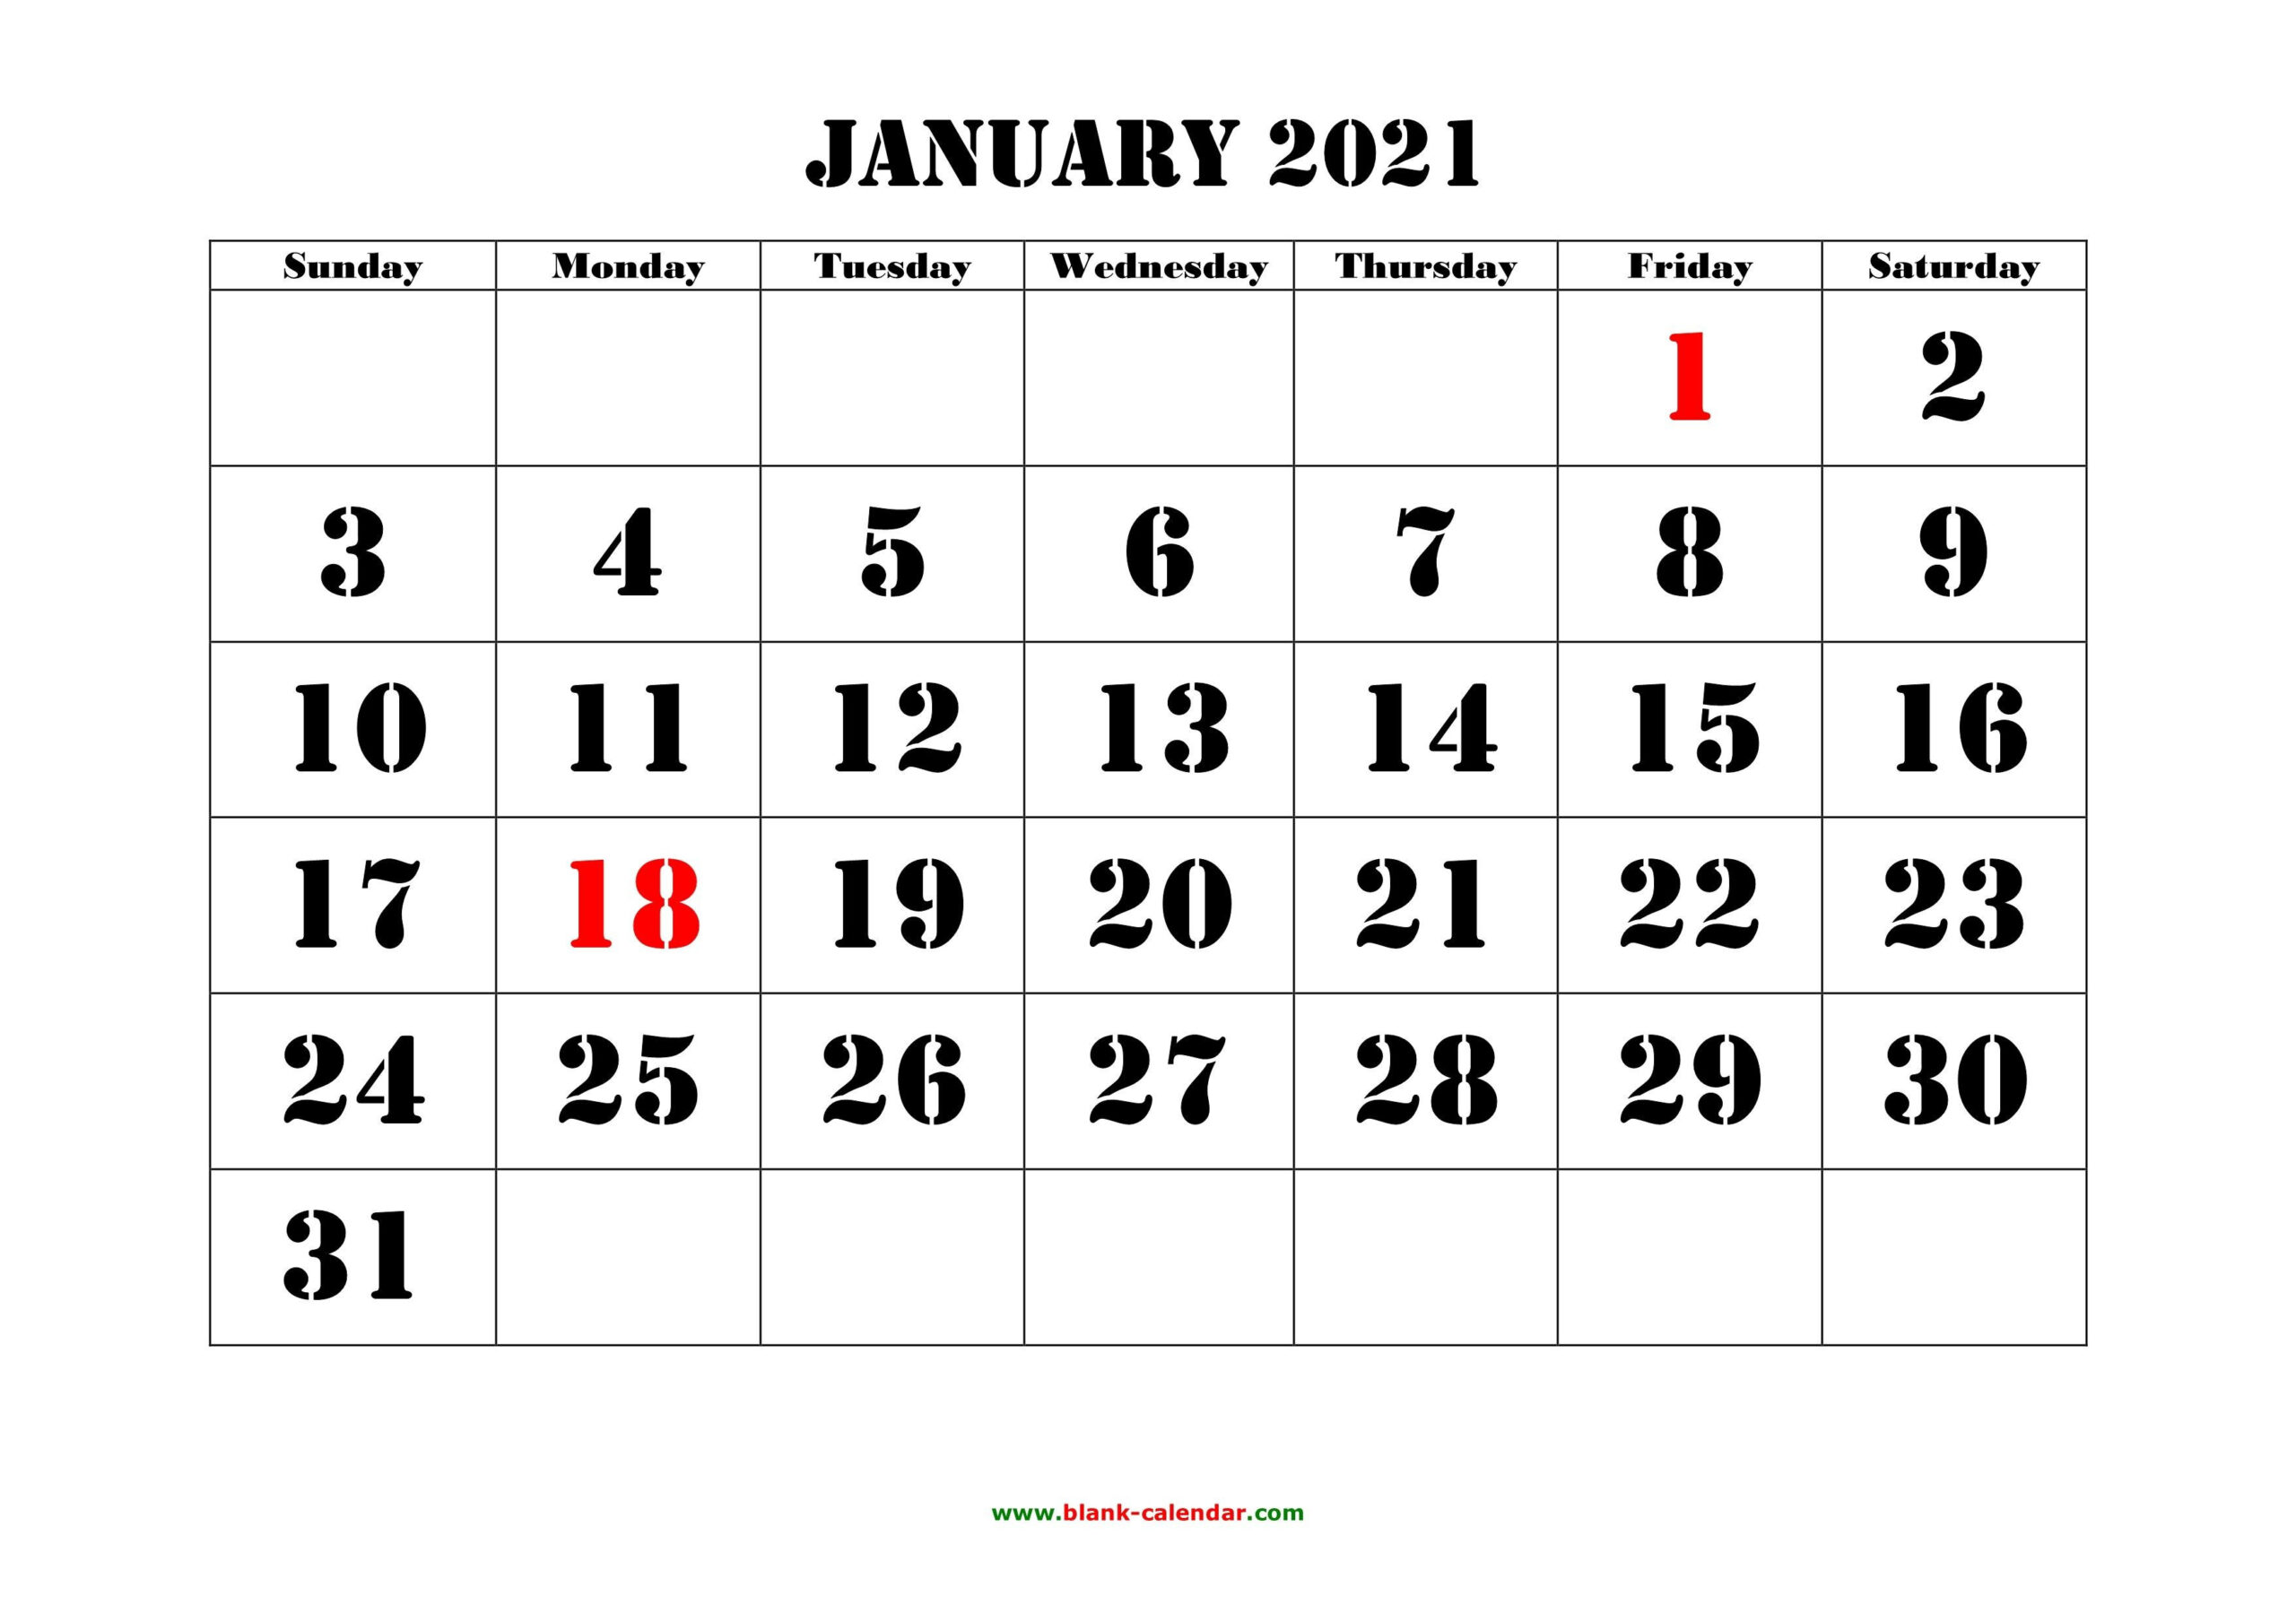 Free 2021 Yearly Calender Template / 12 Month Colorful-2021 Free 12 Month Printable Monthly Calendar